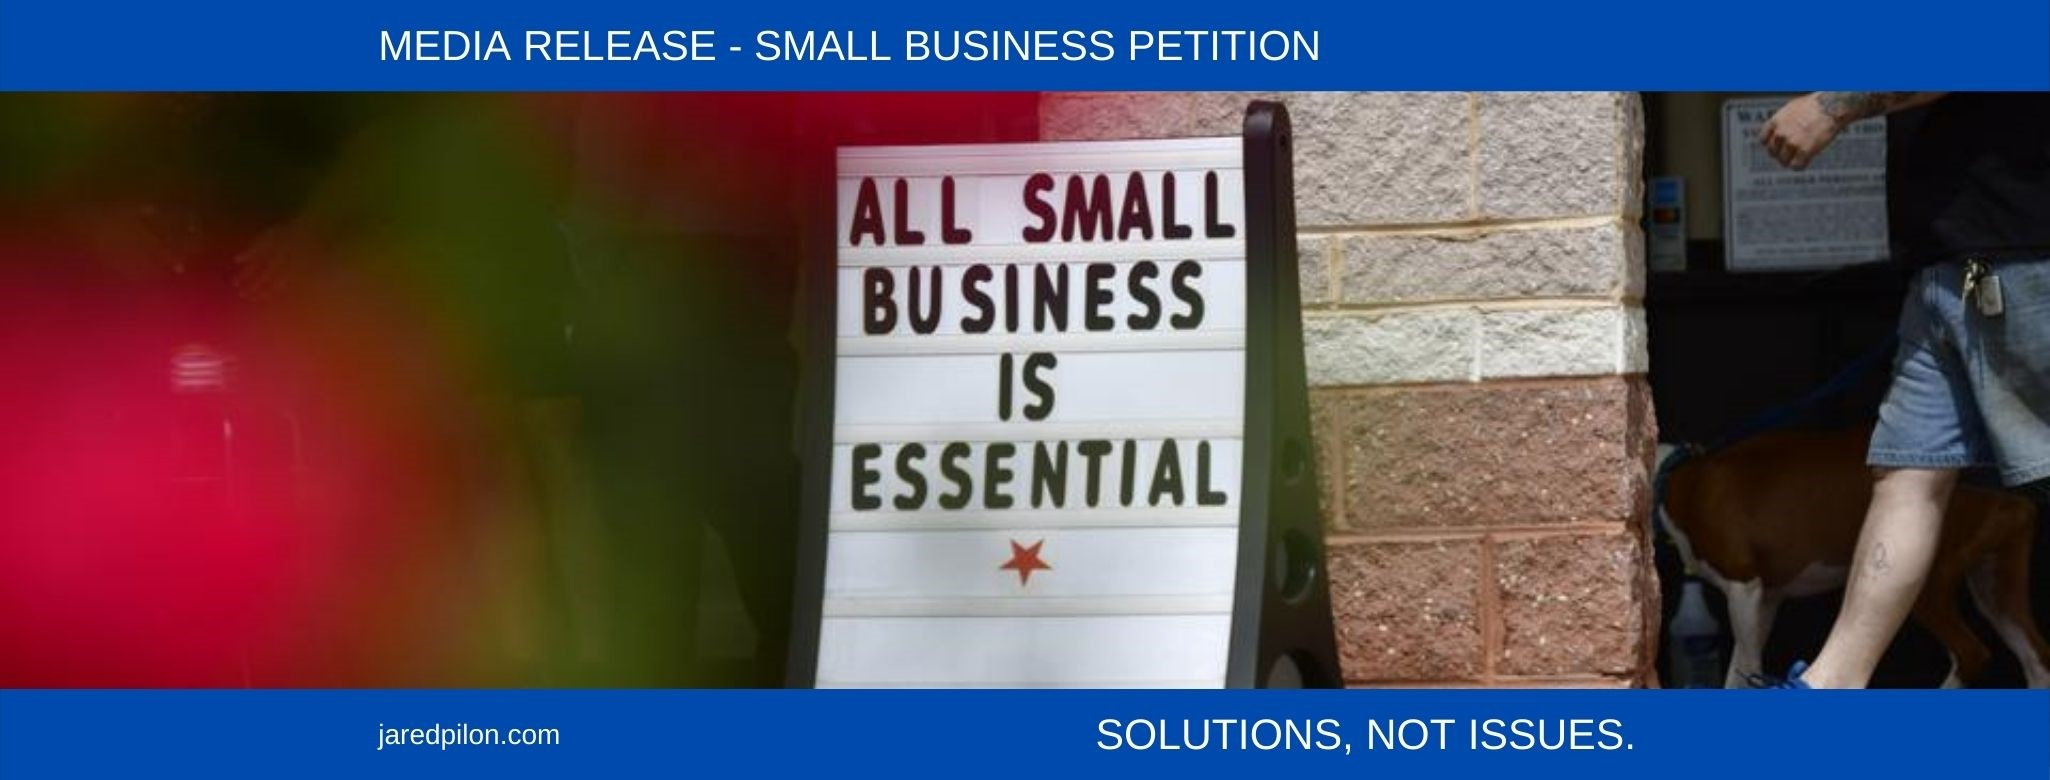 Small Business Petition